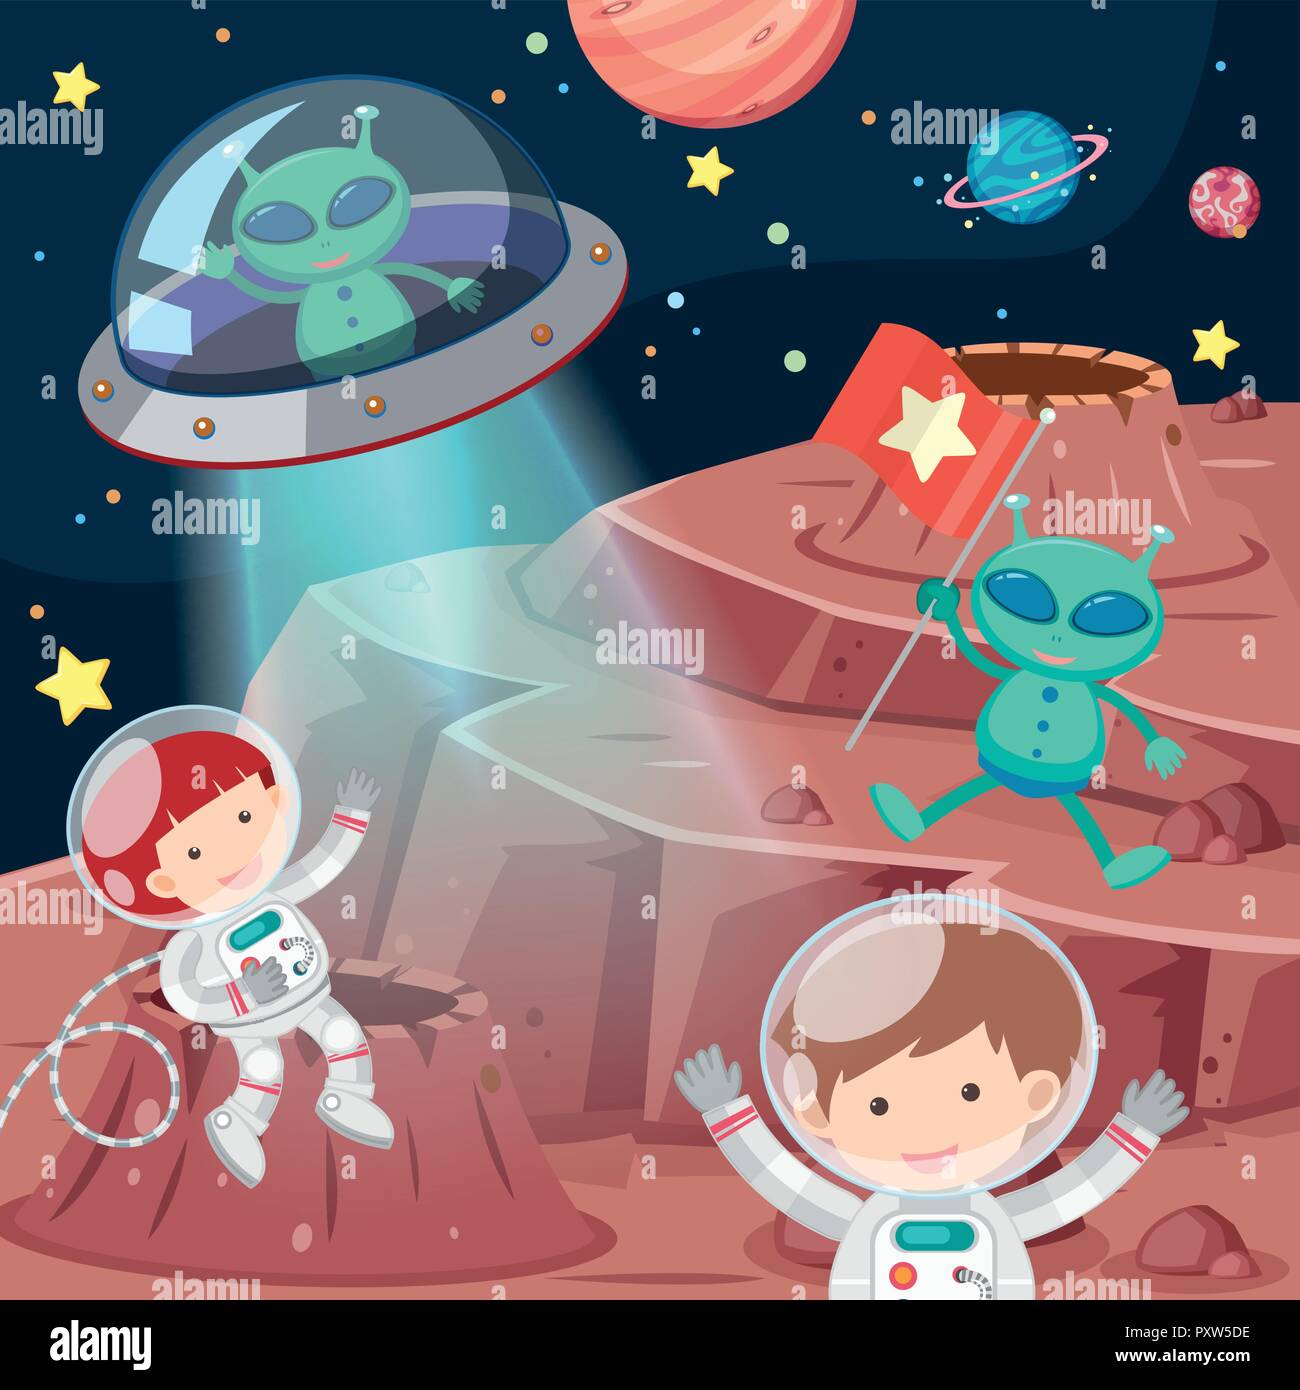 Astronauts and aliens exploring space illustration - Stock Vector